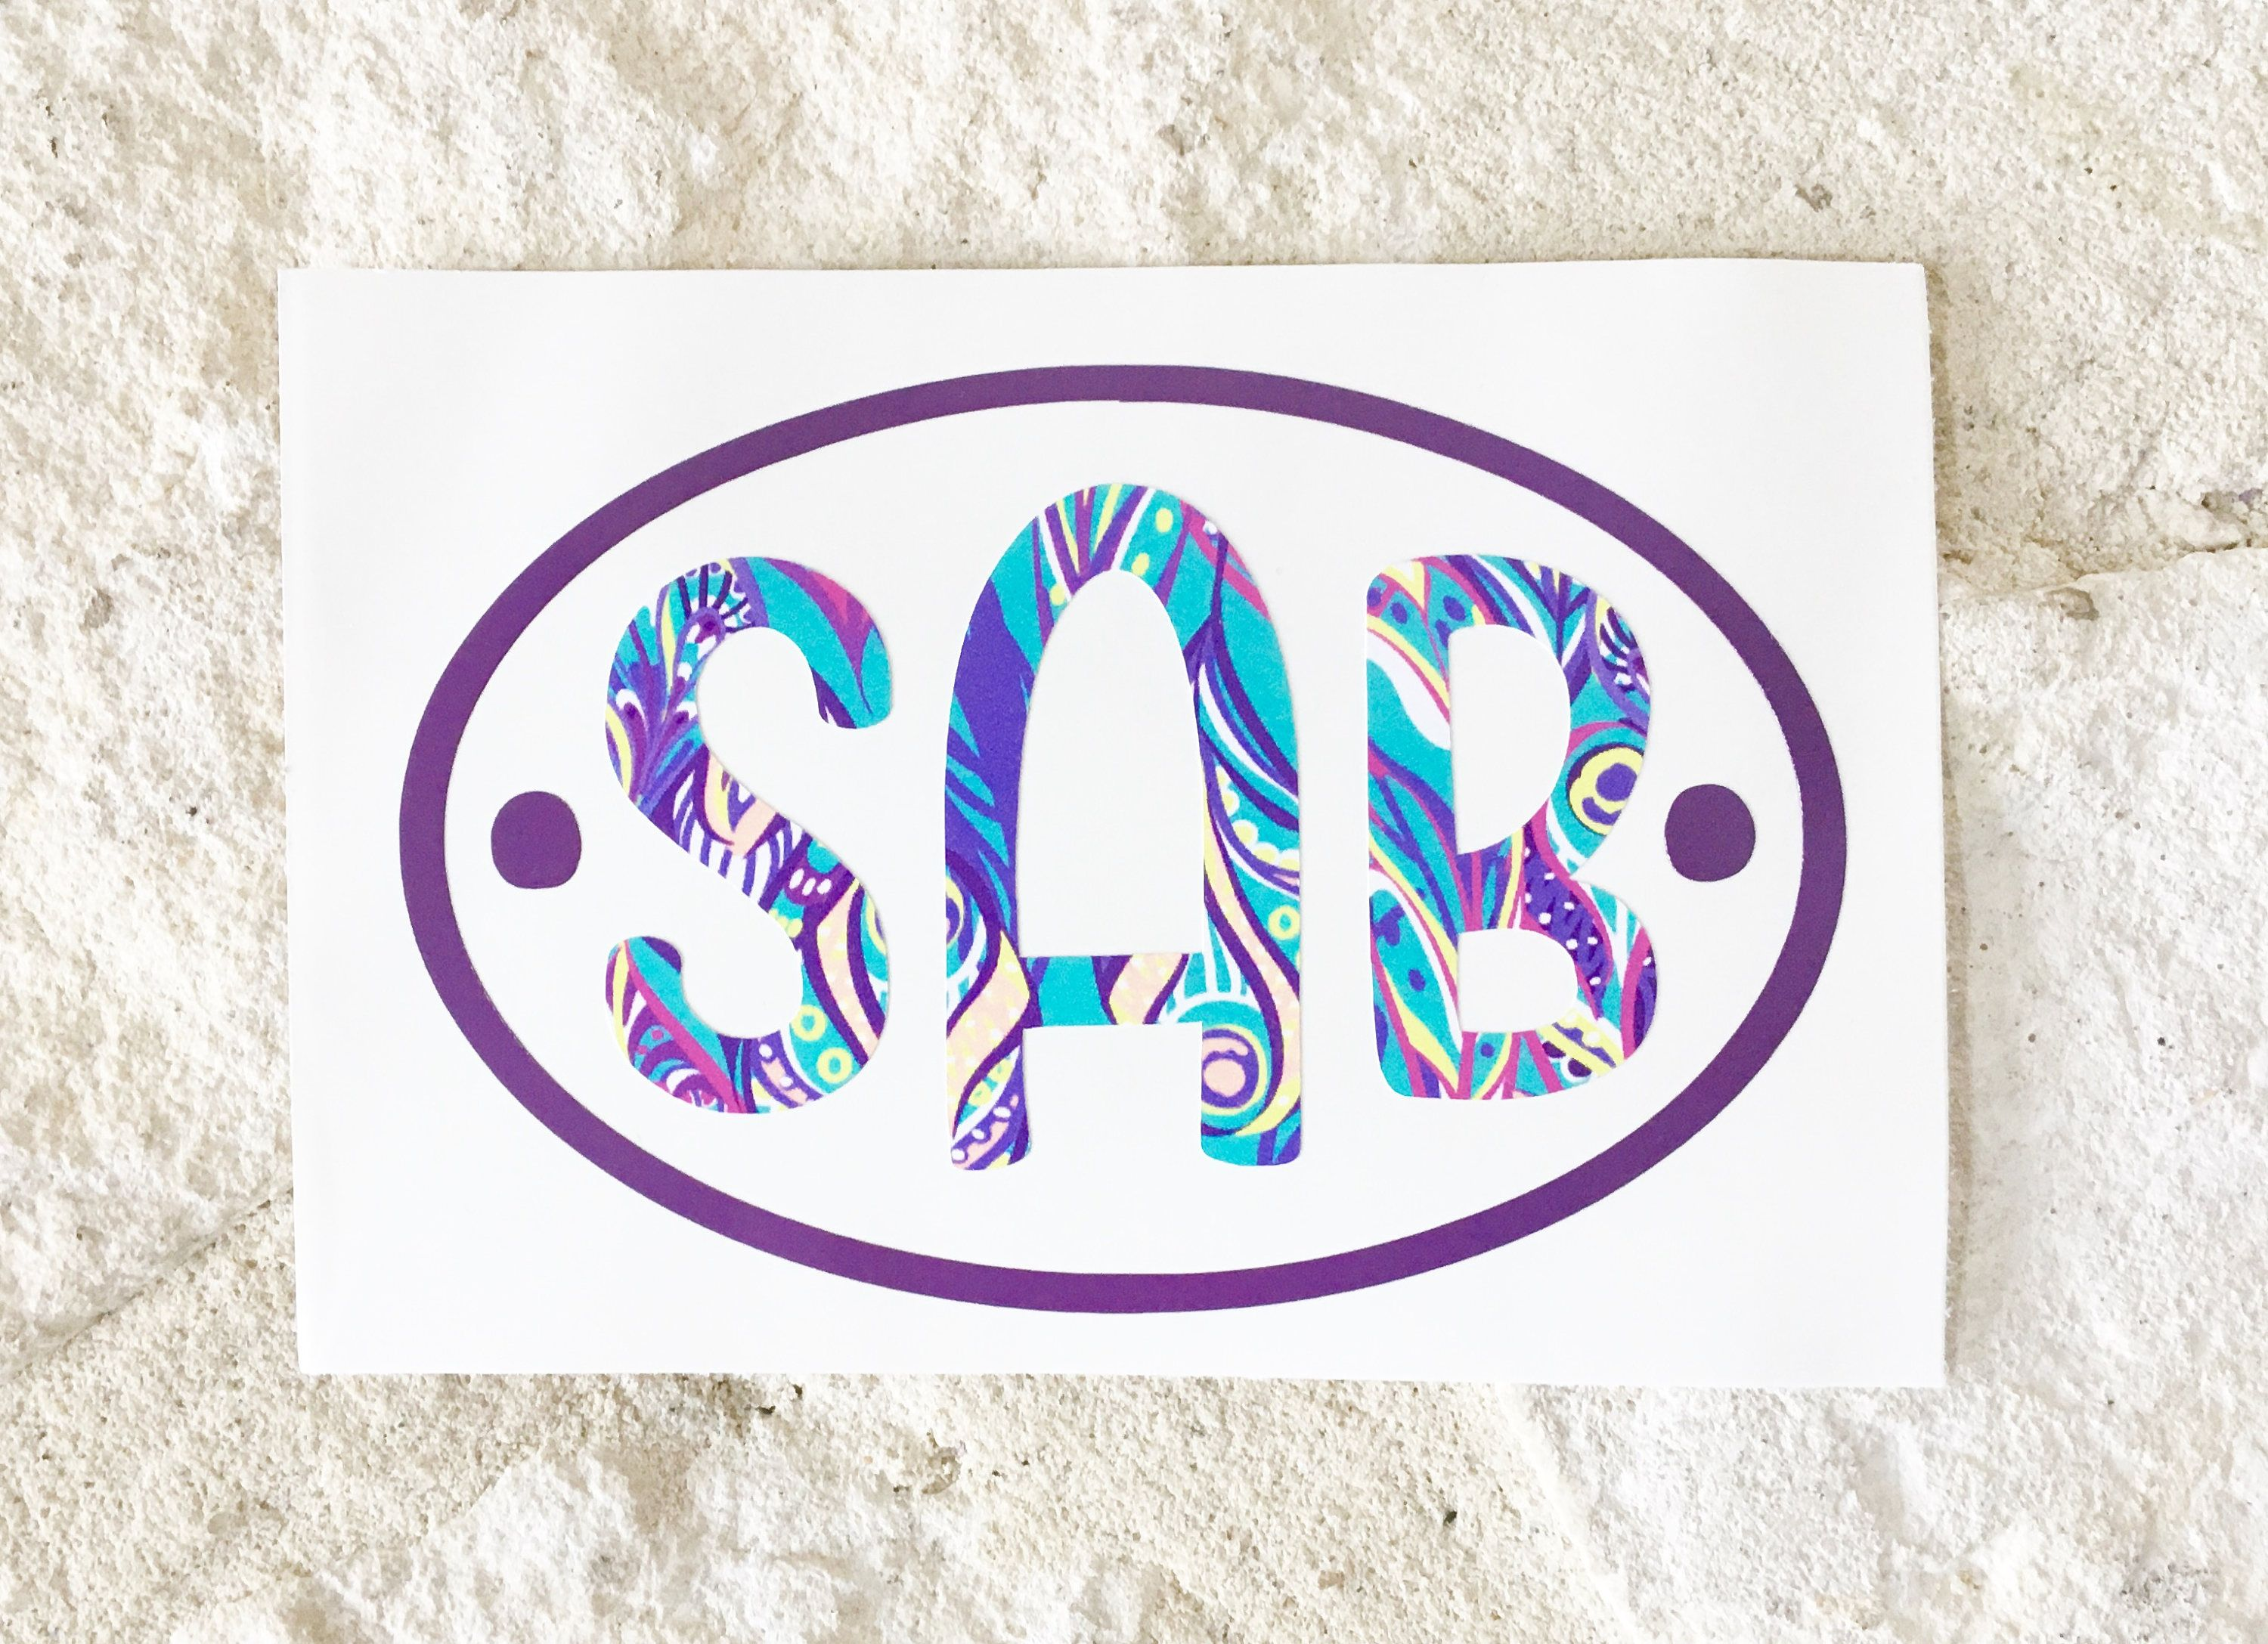 Monogram Decal Custom Decal Personalized Decal Vinyl Decal - Monogrammed custom vinyl decals for car